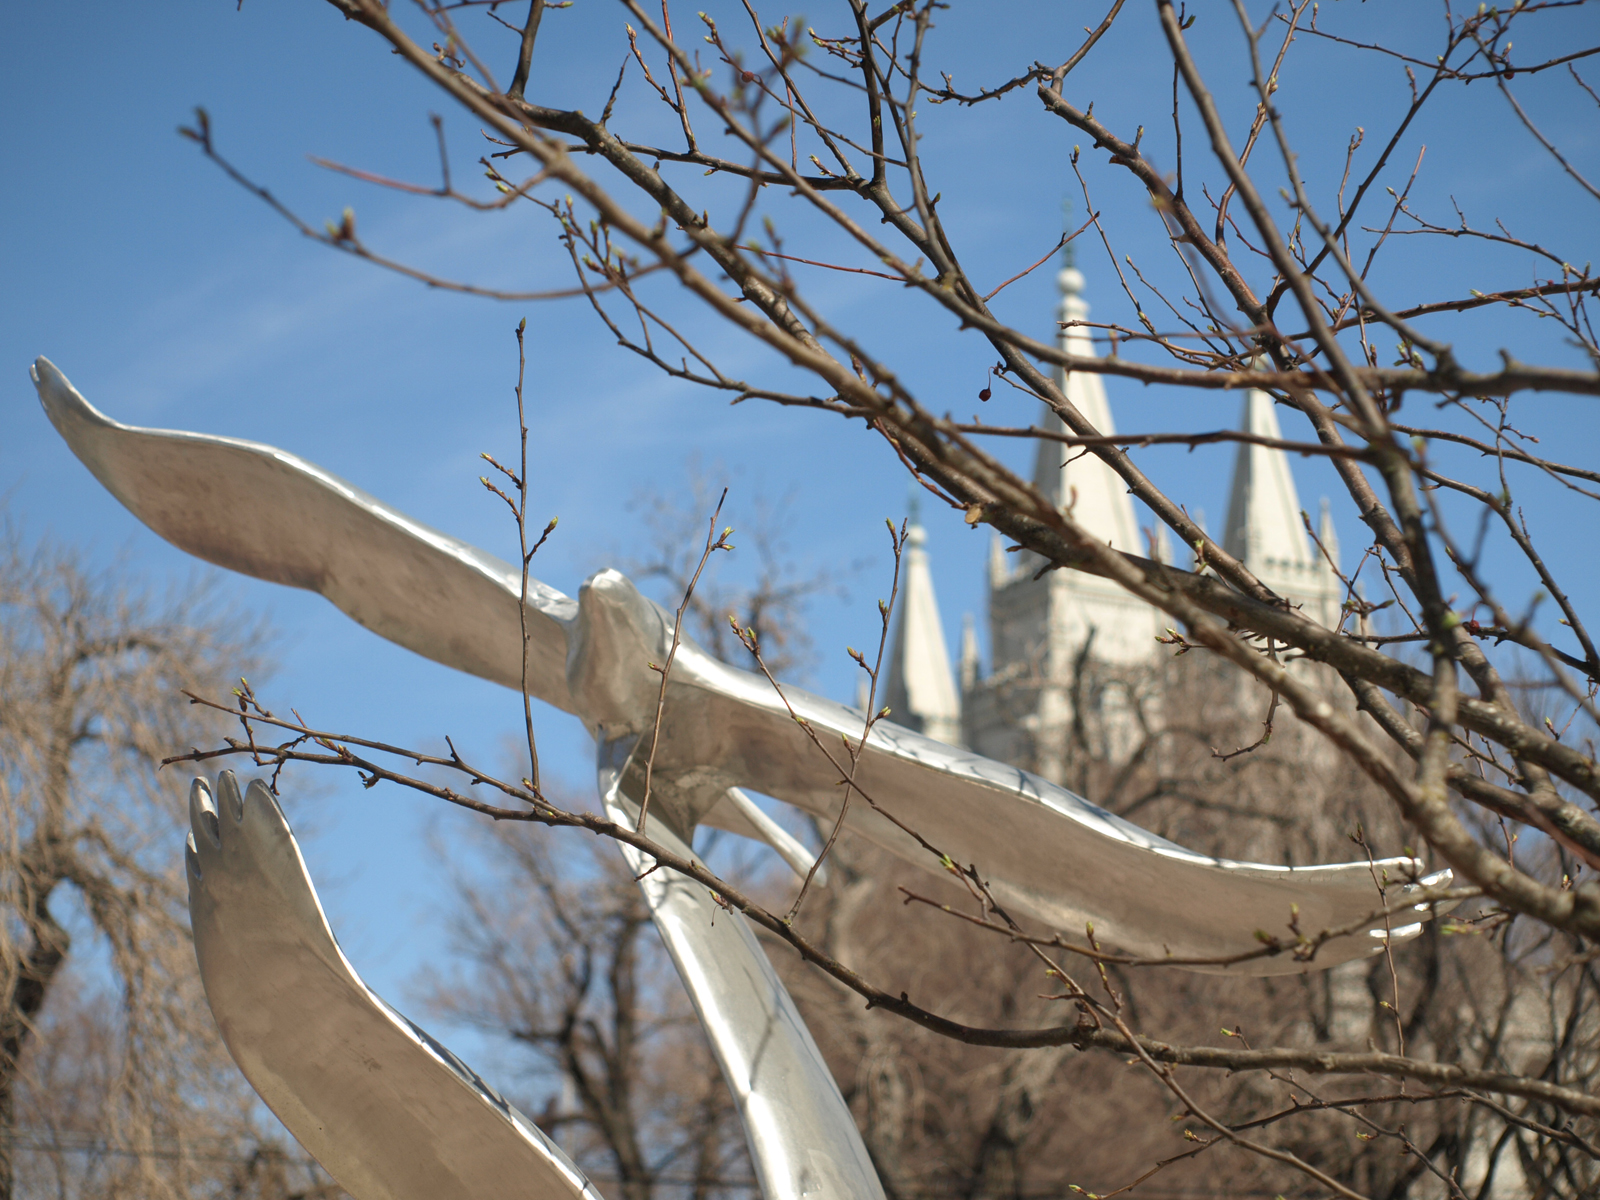 Public art at Salt Lake's City Creek with a view of the LDS temple in the background. Photo by Portia Snow.